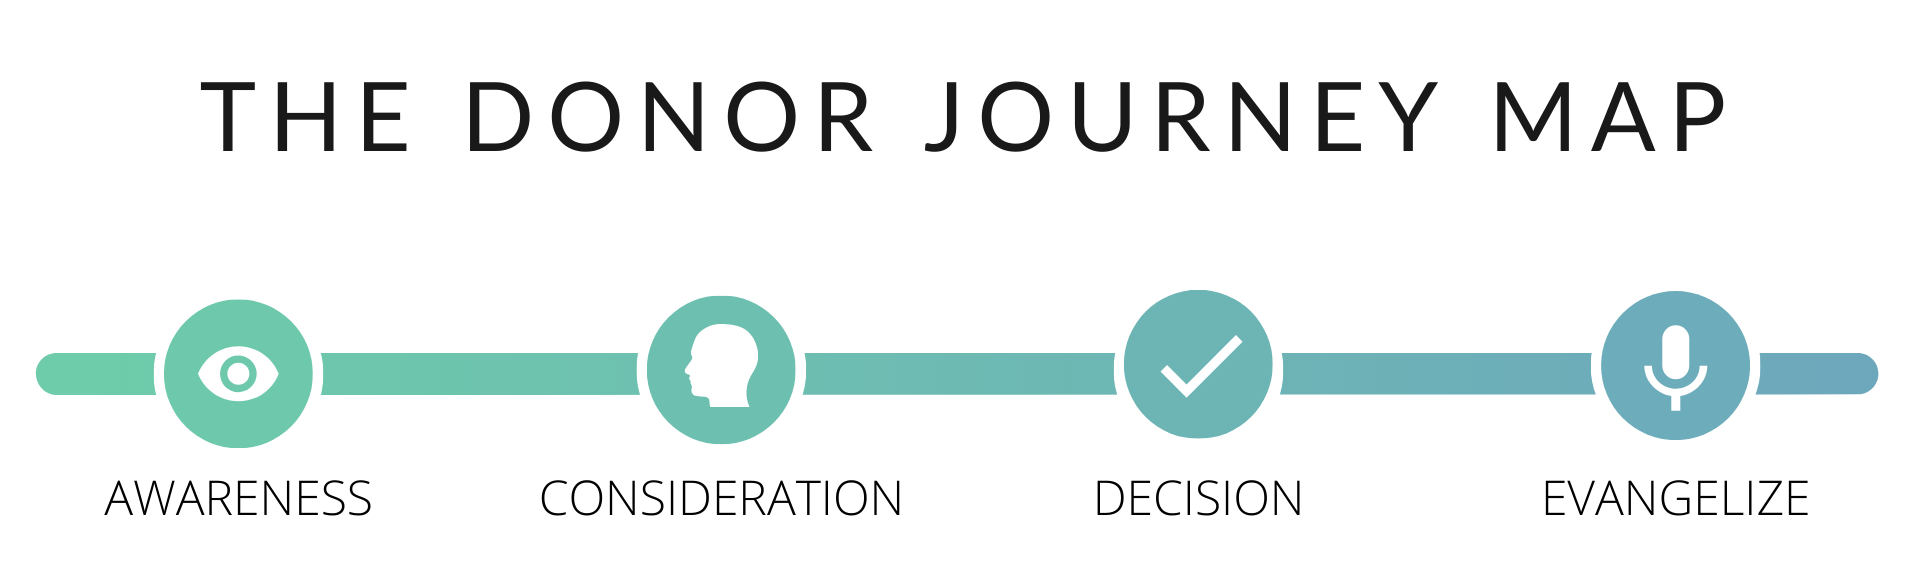 The donor journey map with four stages: awareness, consideration, decision, evangelize